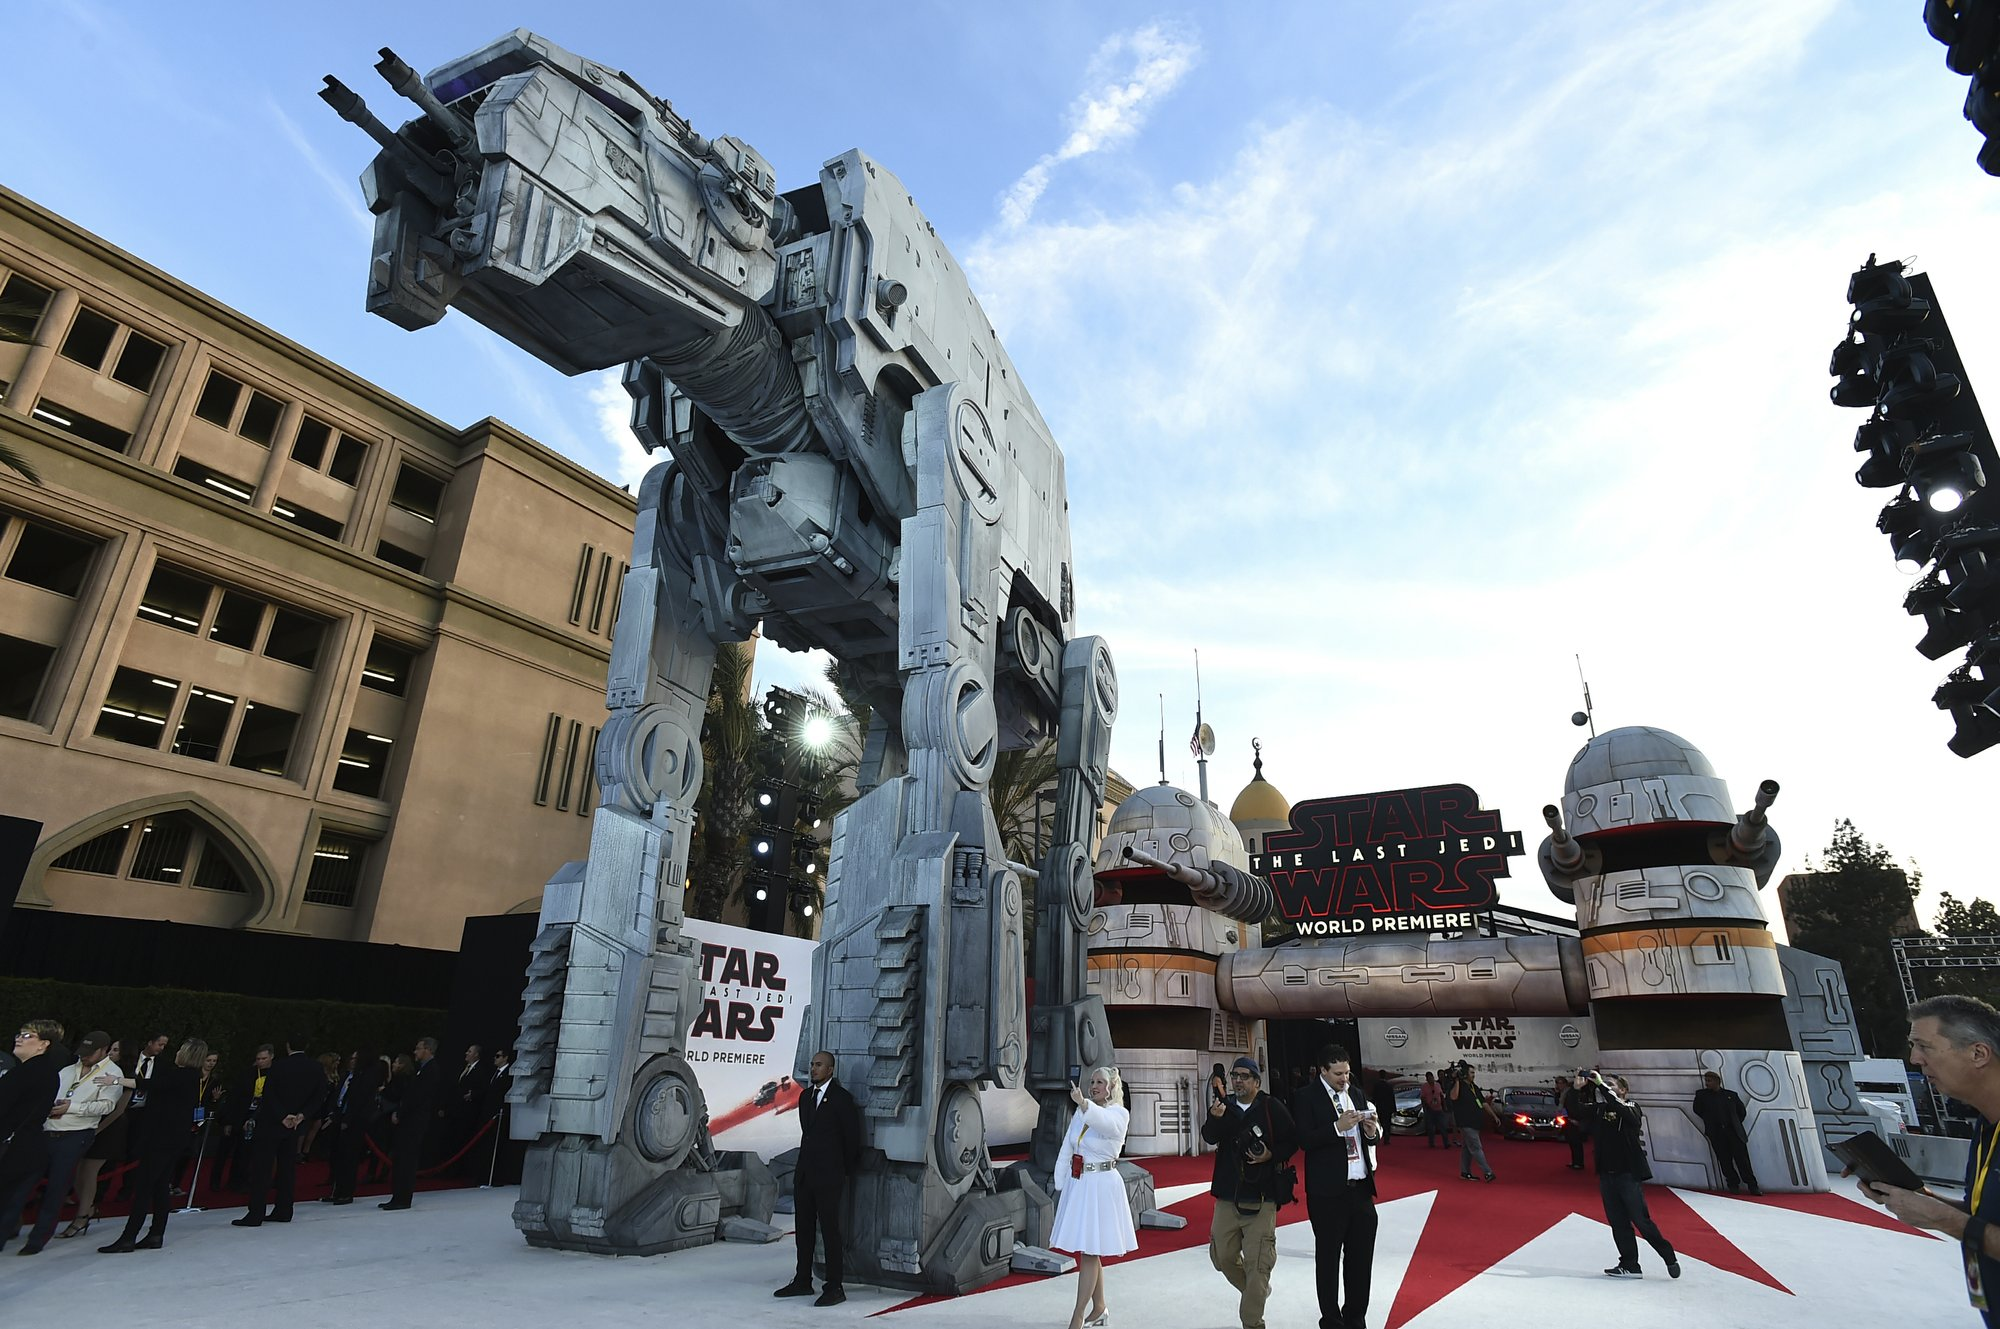 Early praise for 'The Last Jedi' after elaborate premiere